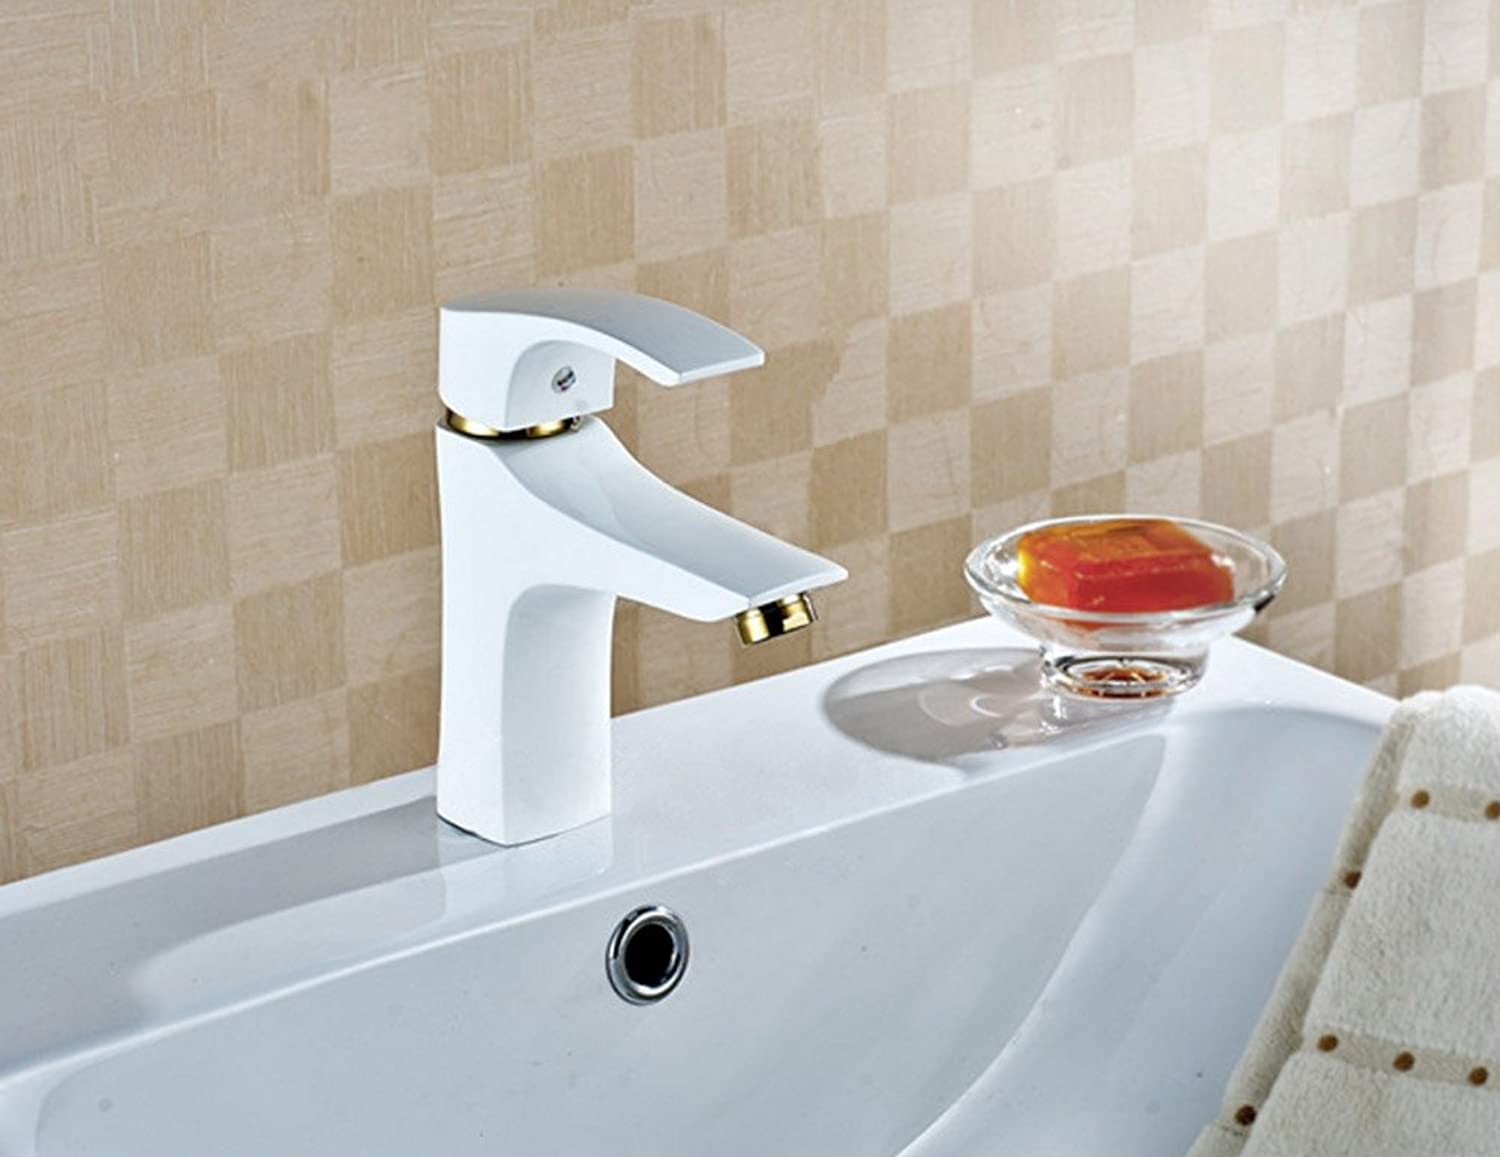 Aawang Deck Mount Basin Bathroom Faucets Vanity Vessel Sinks Mixer Bath Brass Tap White